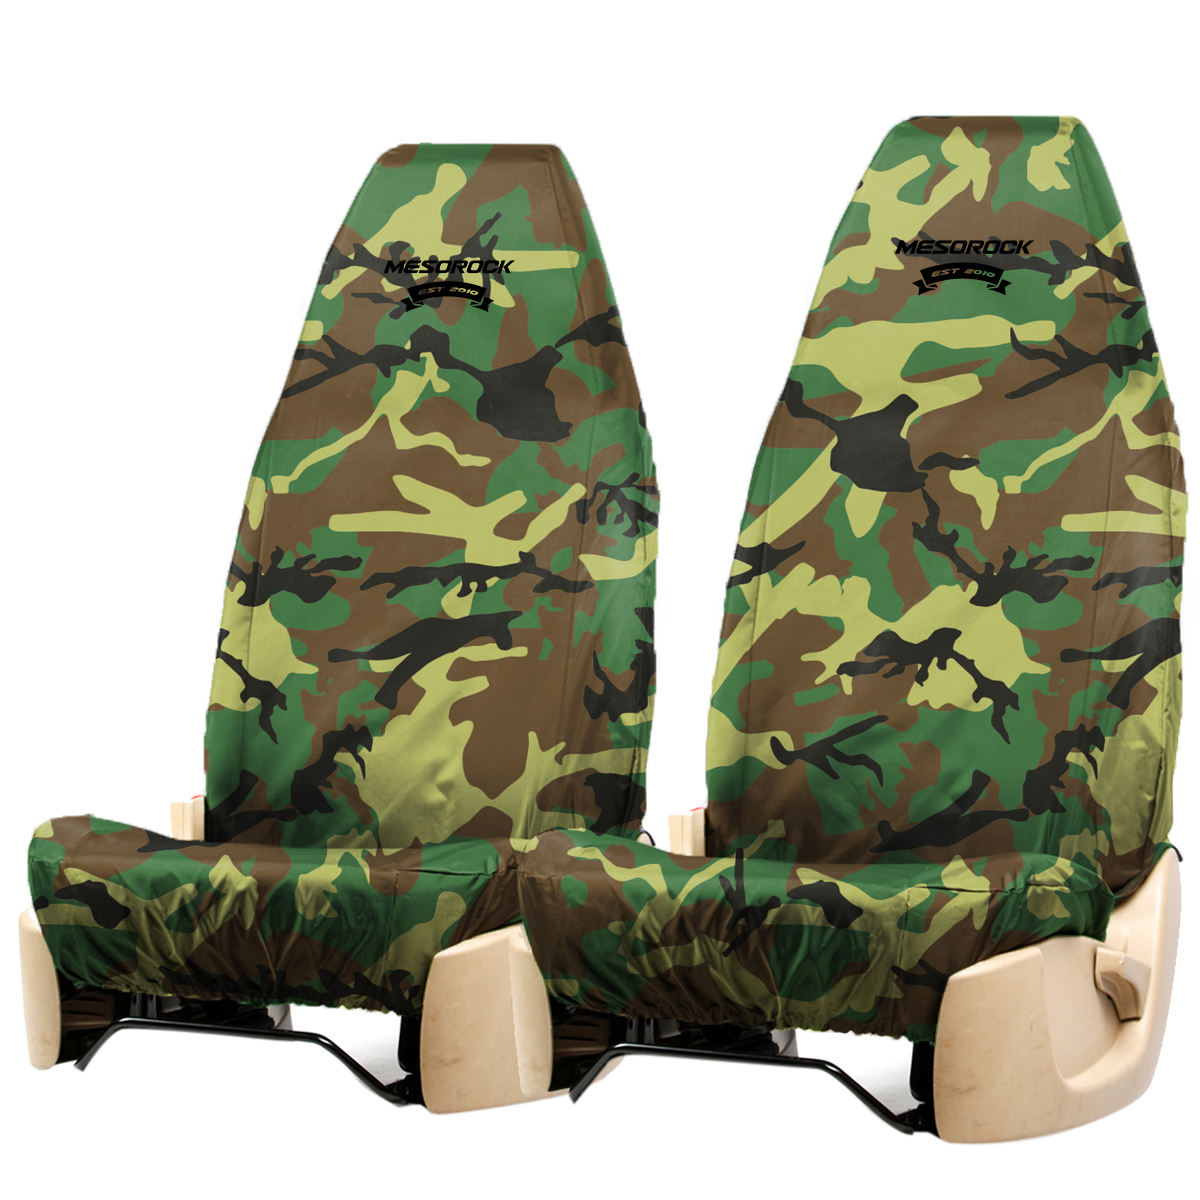 Waterproof Military Camouflage Cool Style Universal Car Seat Cover Fit for Vehicles, Sedan